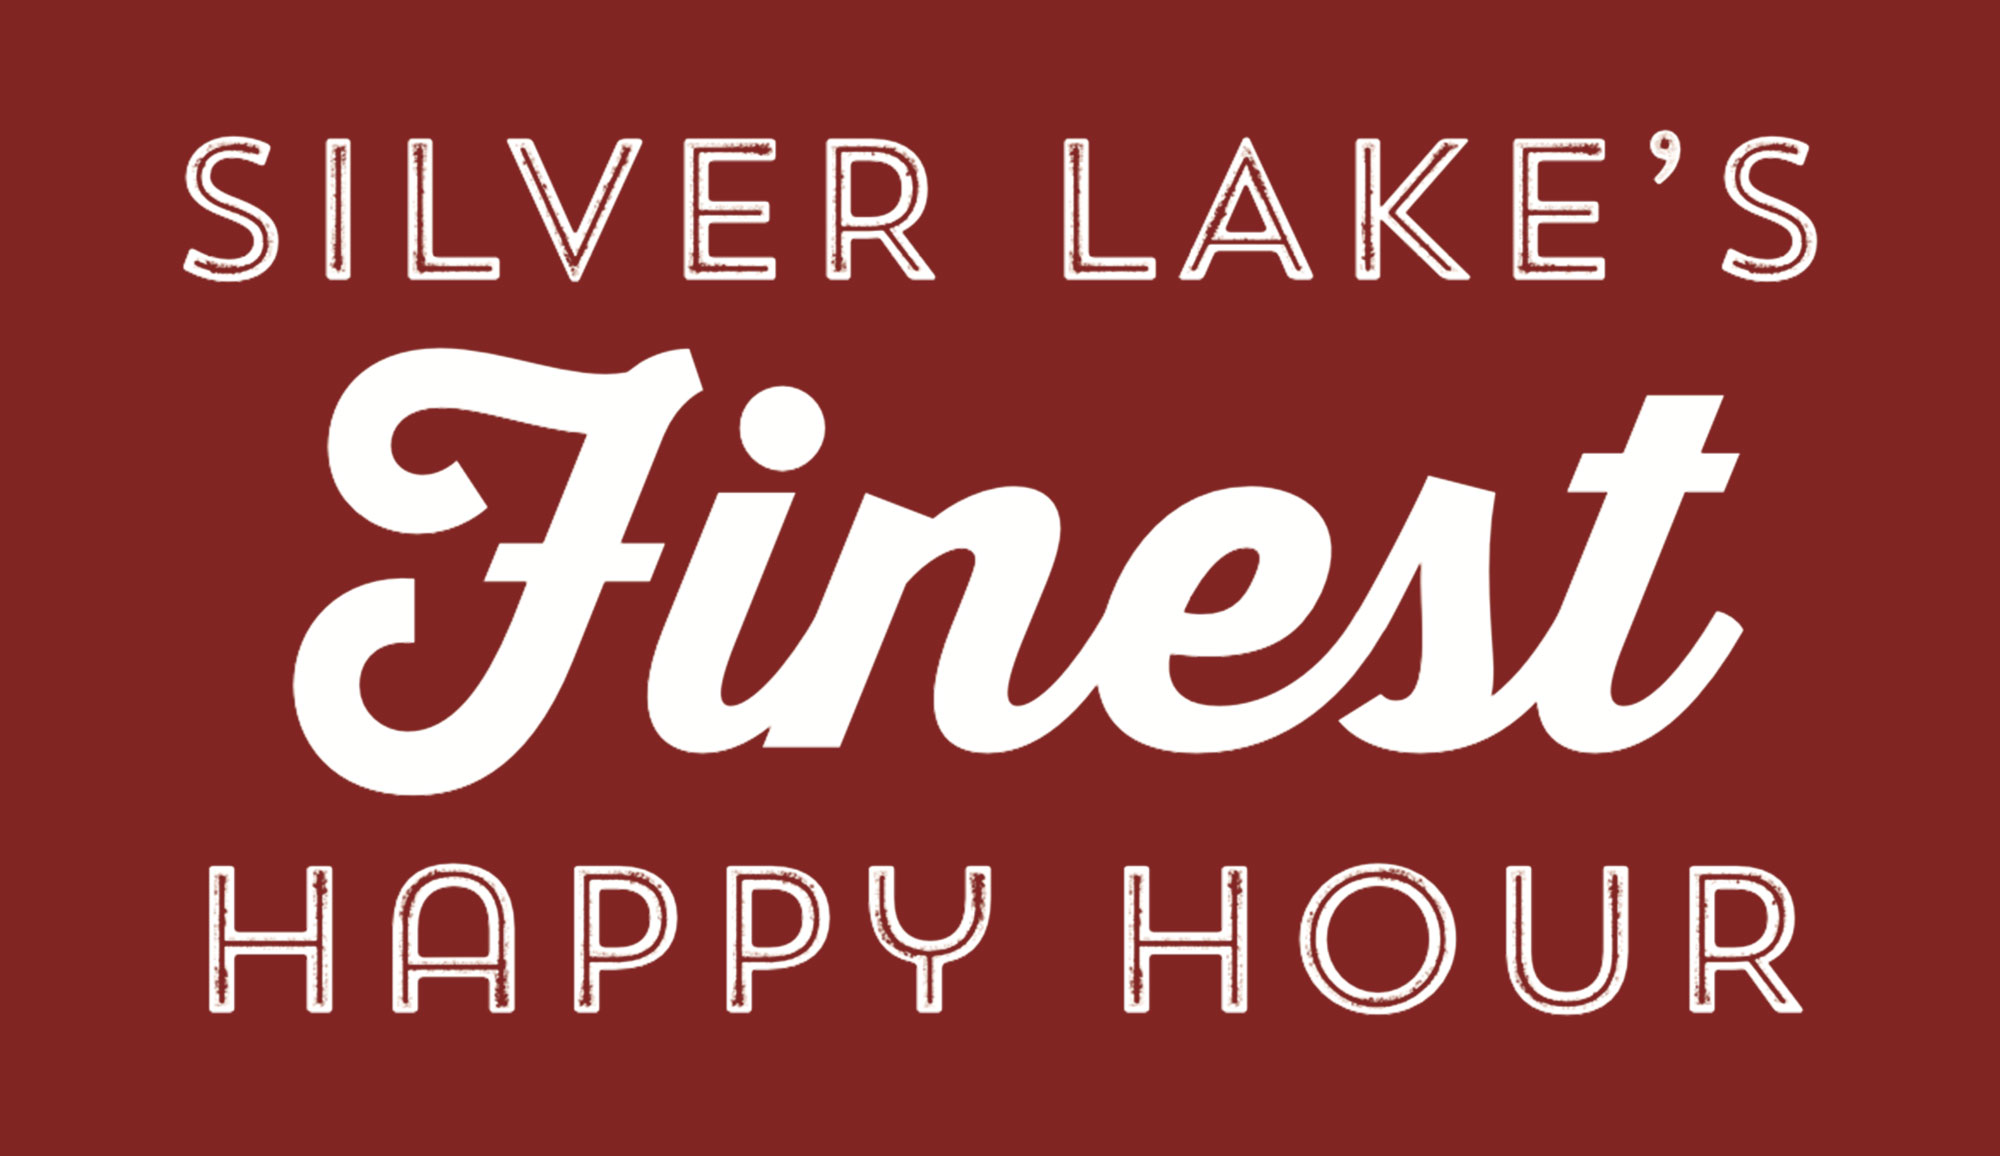 Silver Lake's Finest Happy Hour